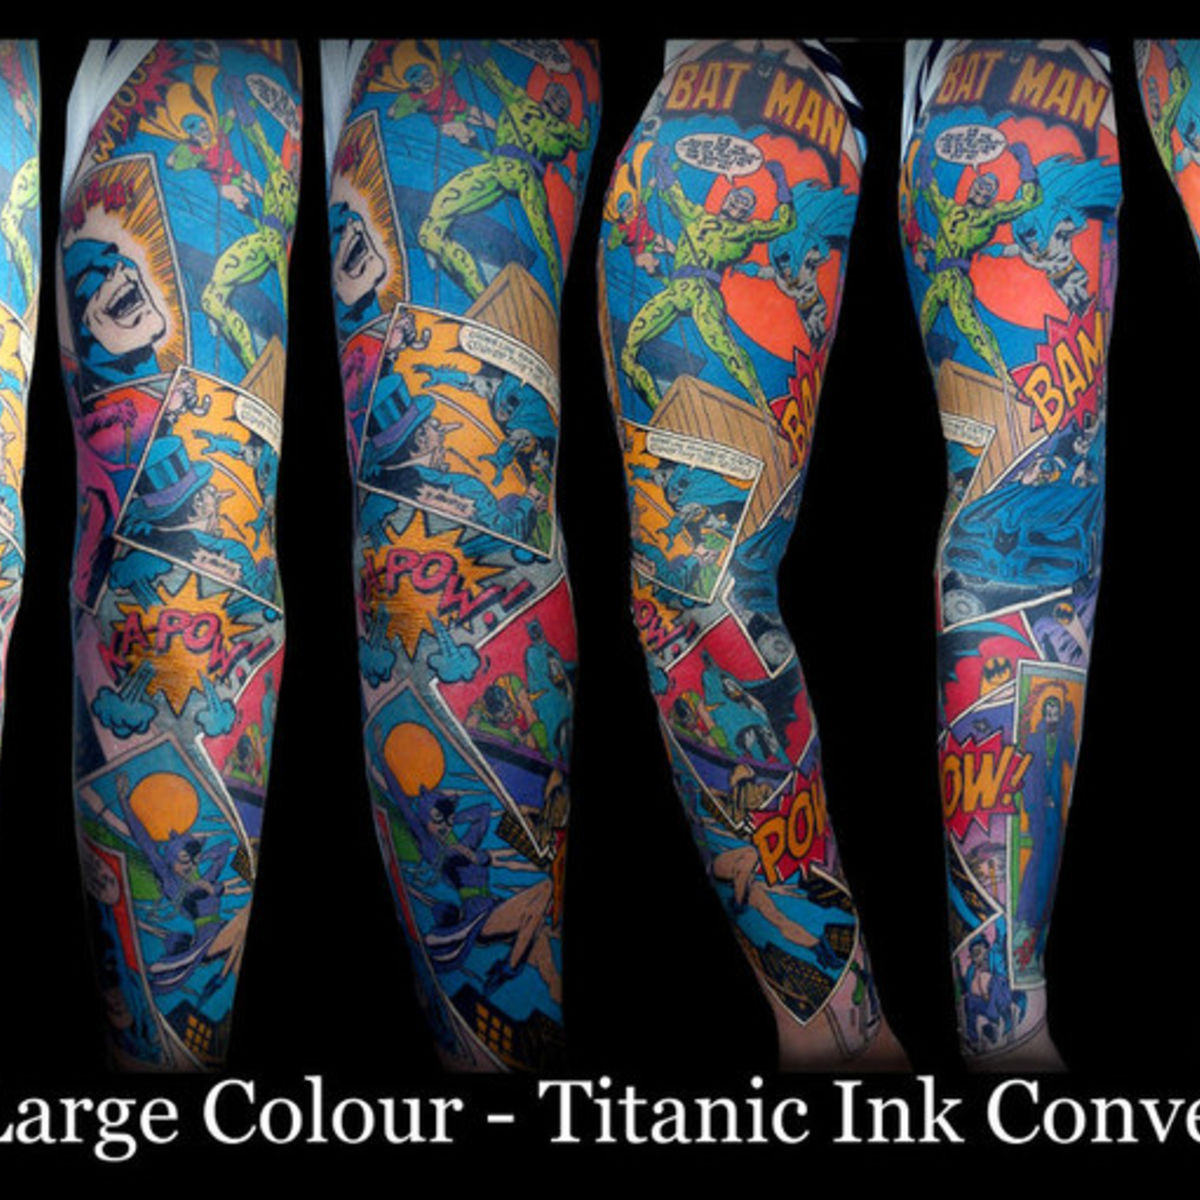 impressively-cool-batman-comic-tattoo-sleeve.jpg